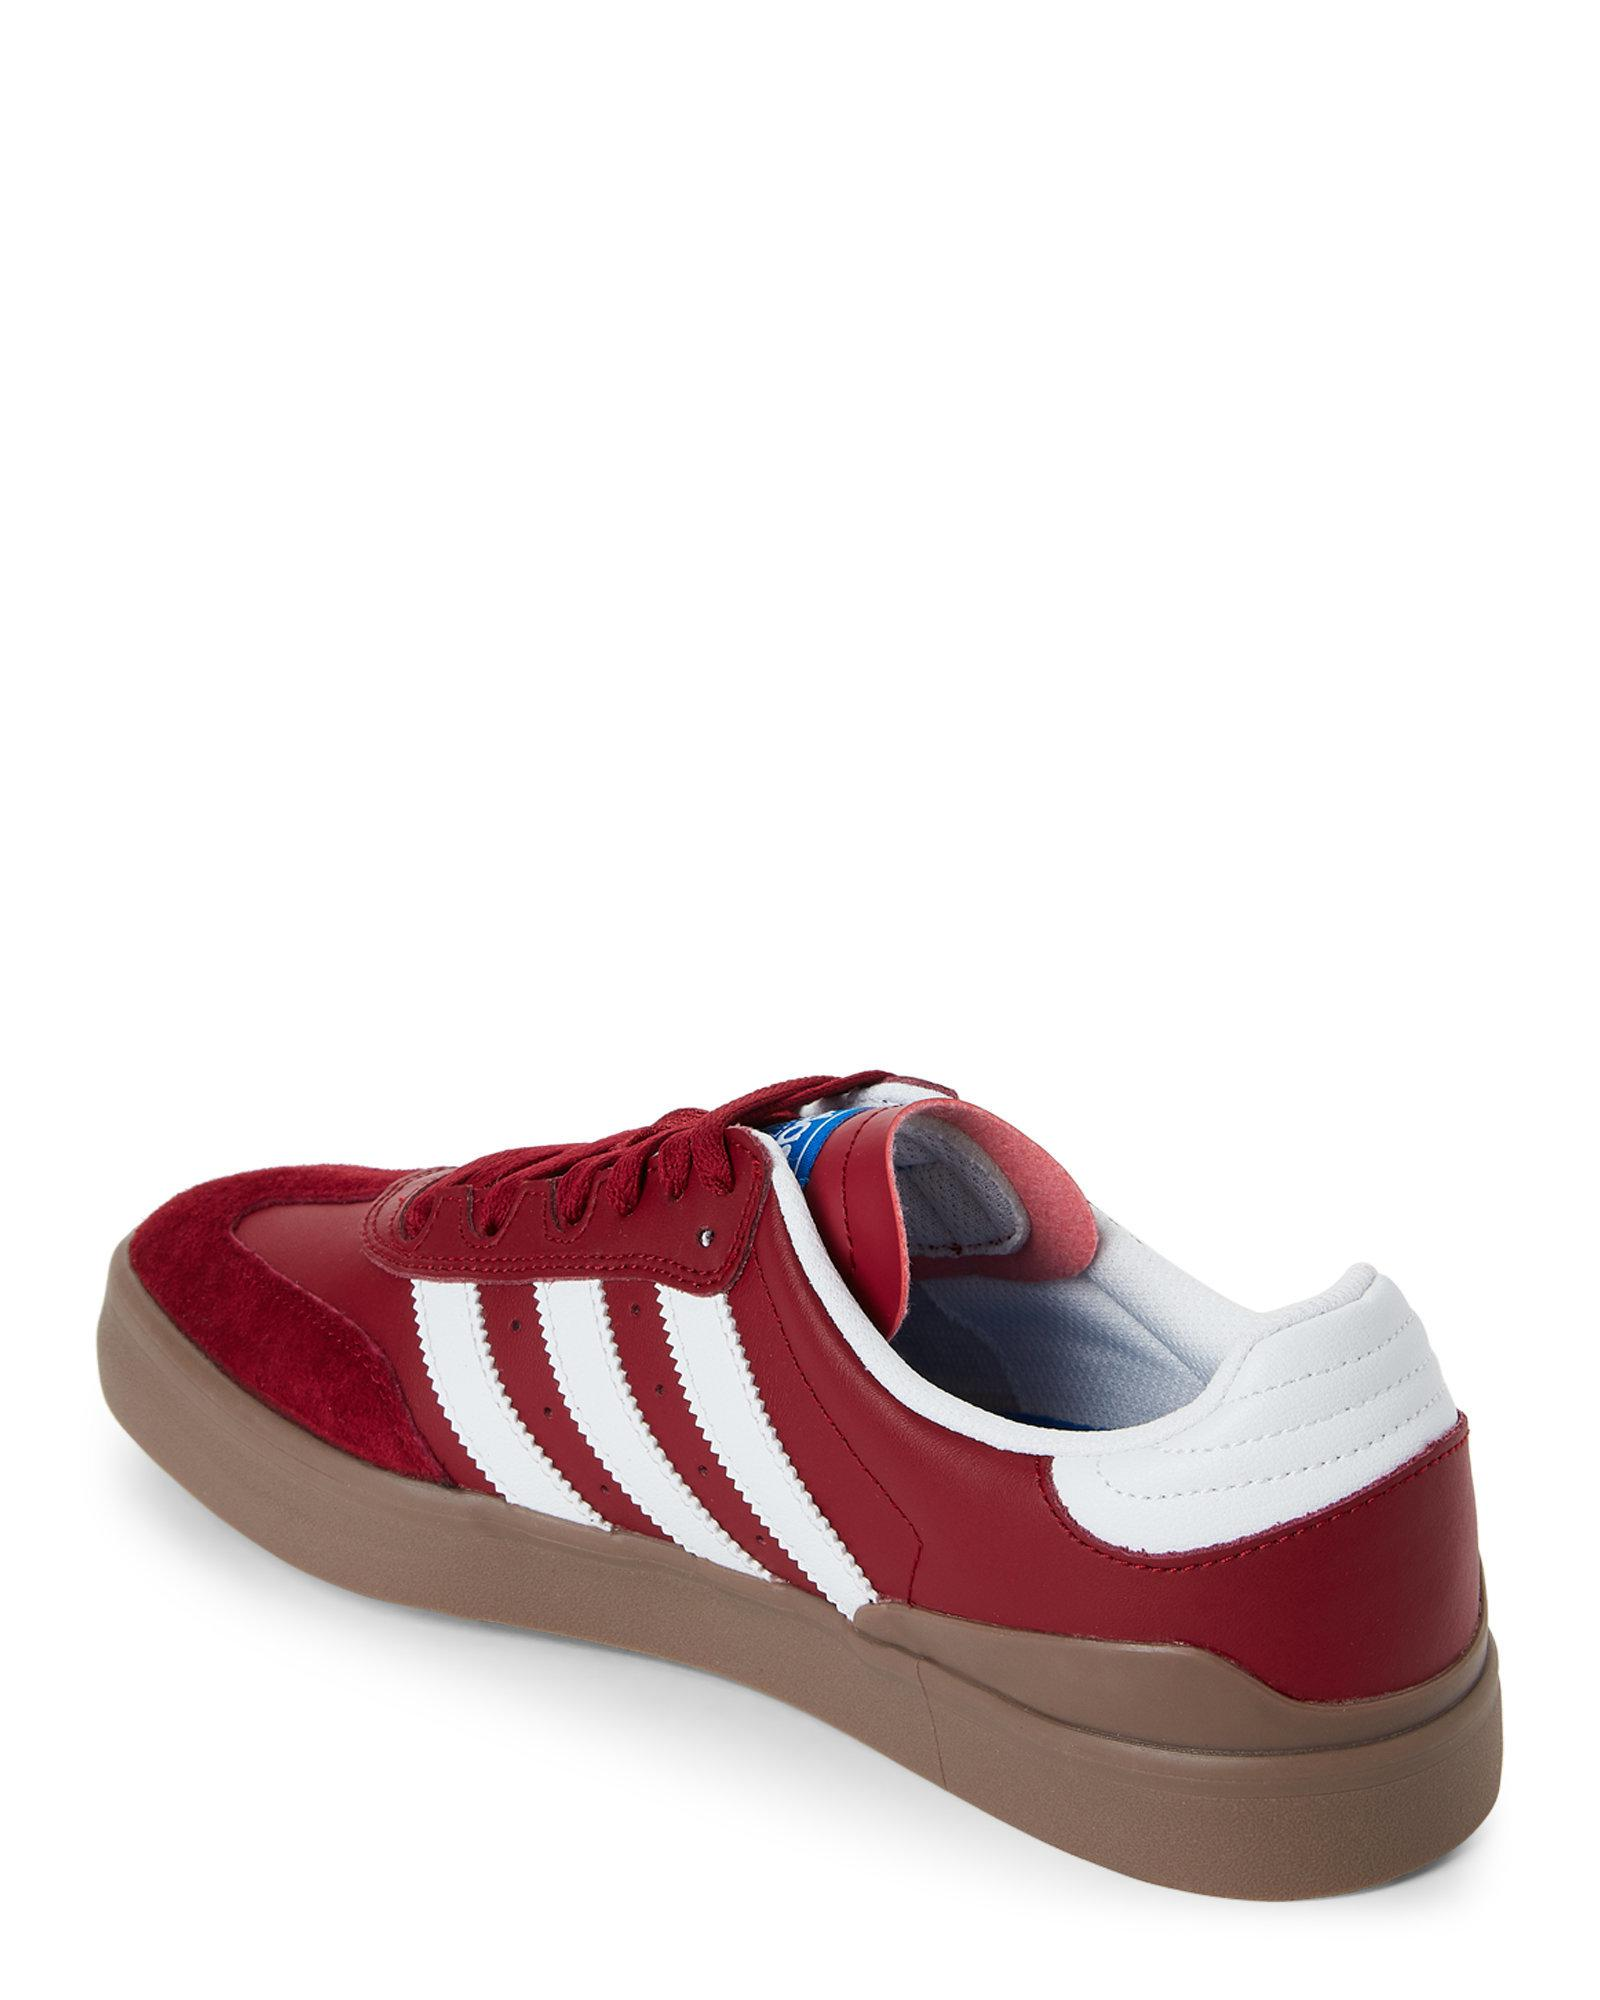 0154d16e354 Lyst - adidas Burgundy   White Busenitz Vulc Rx Low-top Sneakers in ...